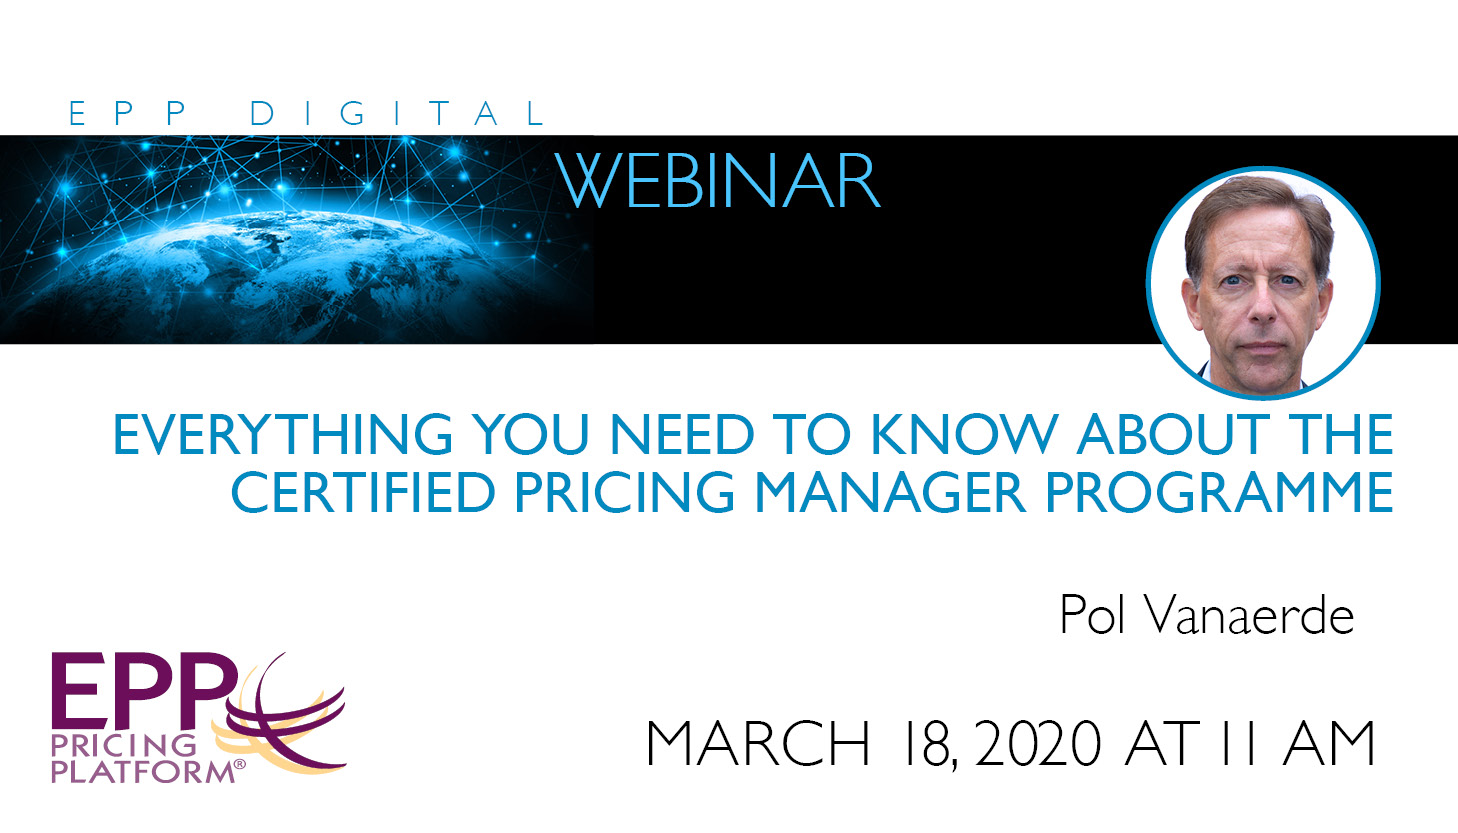 Everything you need to know about the Certified Pricing Manager Programme